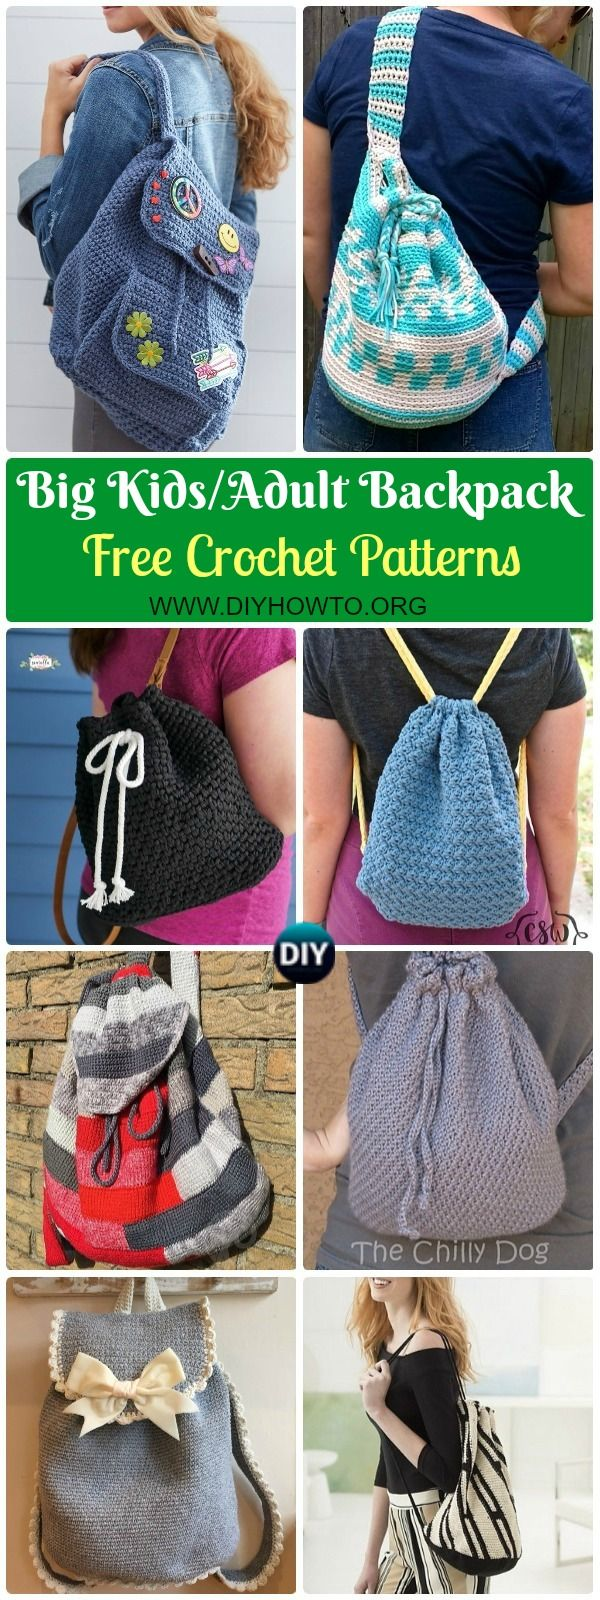 Collection of Crochet Backpack Free Patterns for Big Kids&Adults. Crochet drawstring bags, crochet school bacpack, crochet backpack, sling backpack